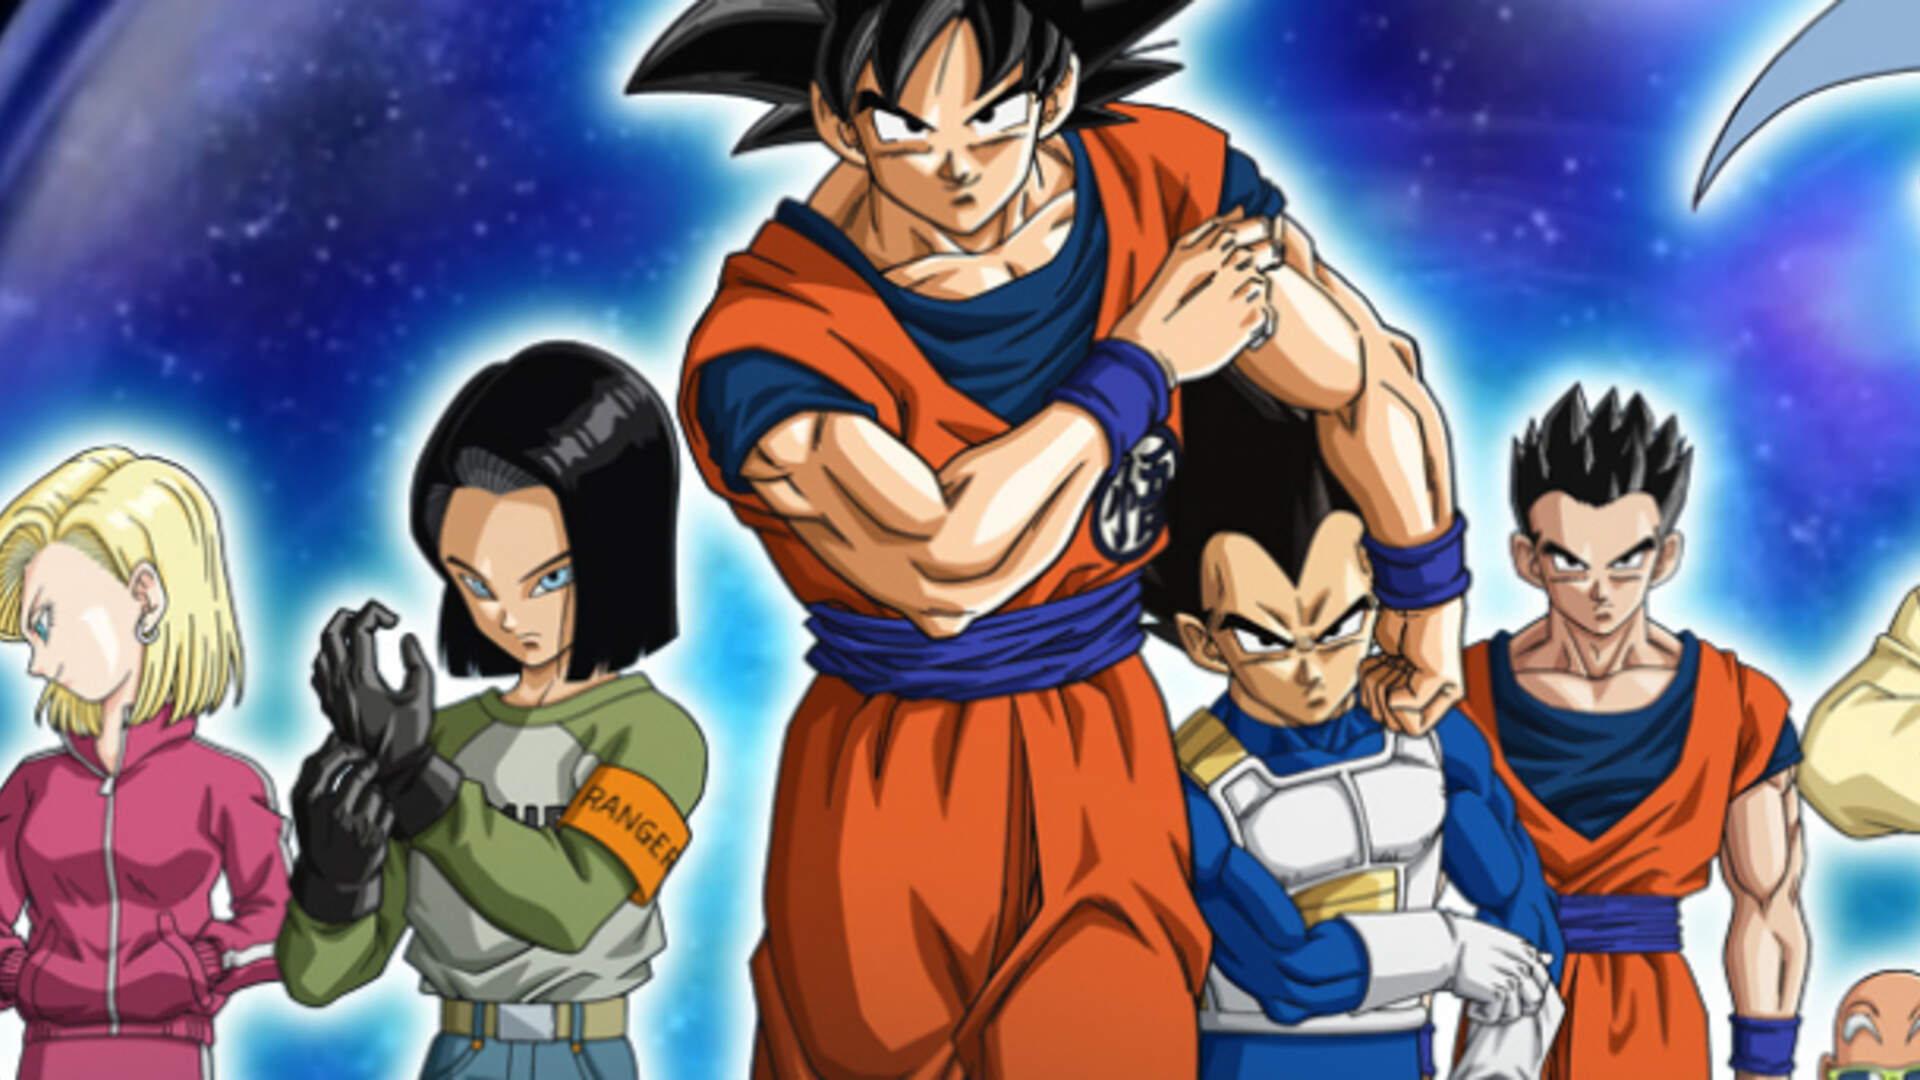 Dragon Ball FighterZ Roster Guide: Which Character Should I Pick?